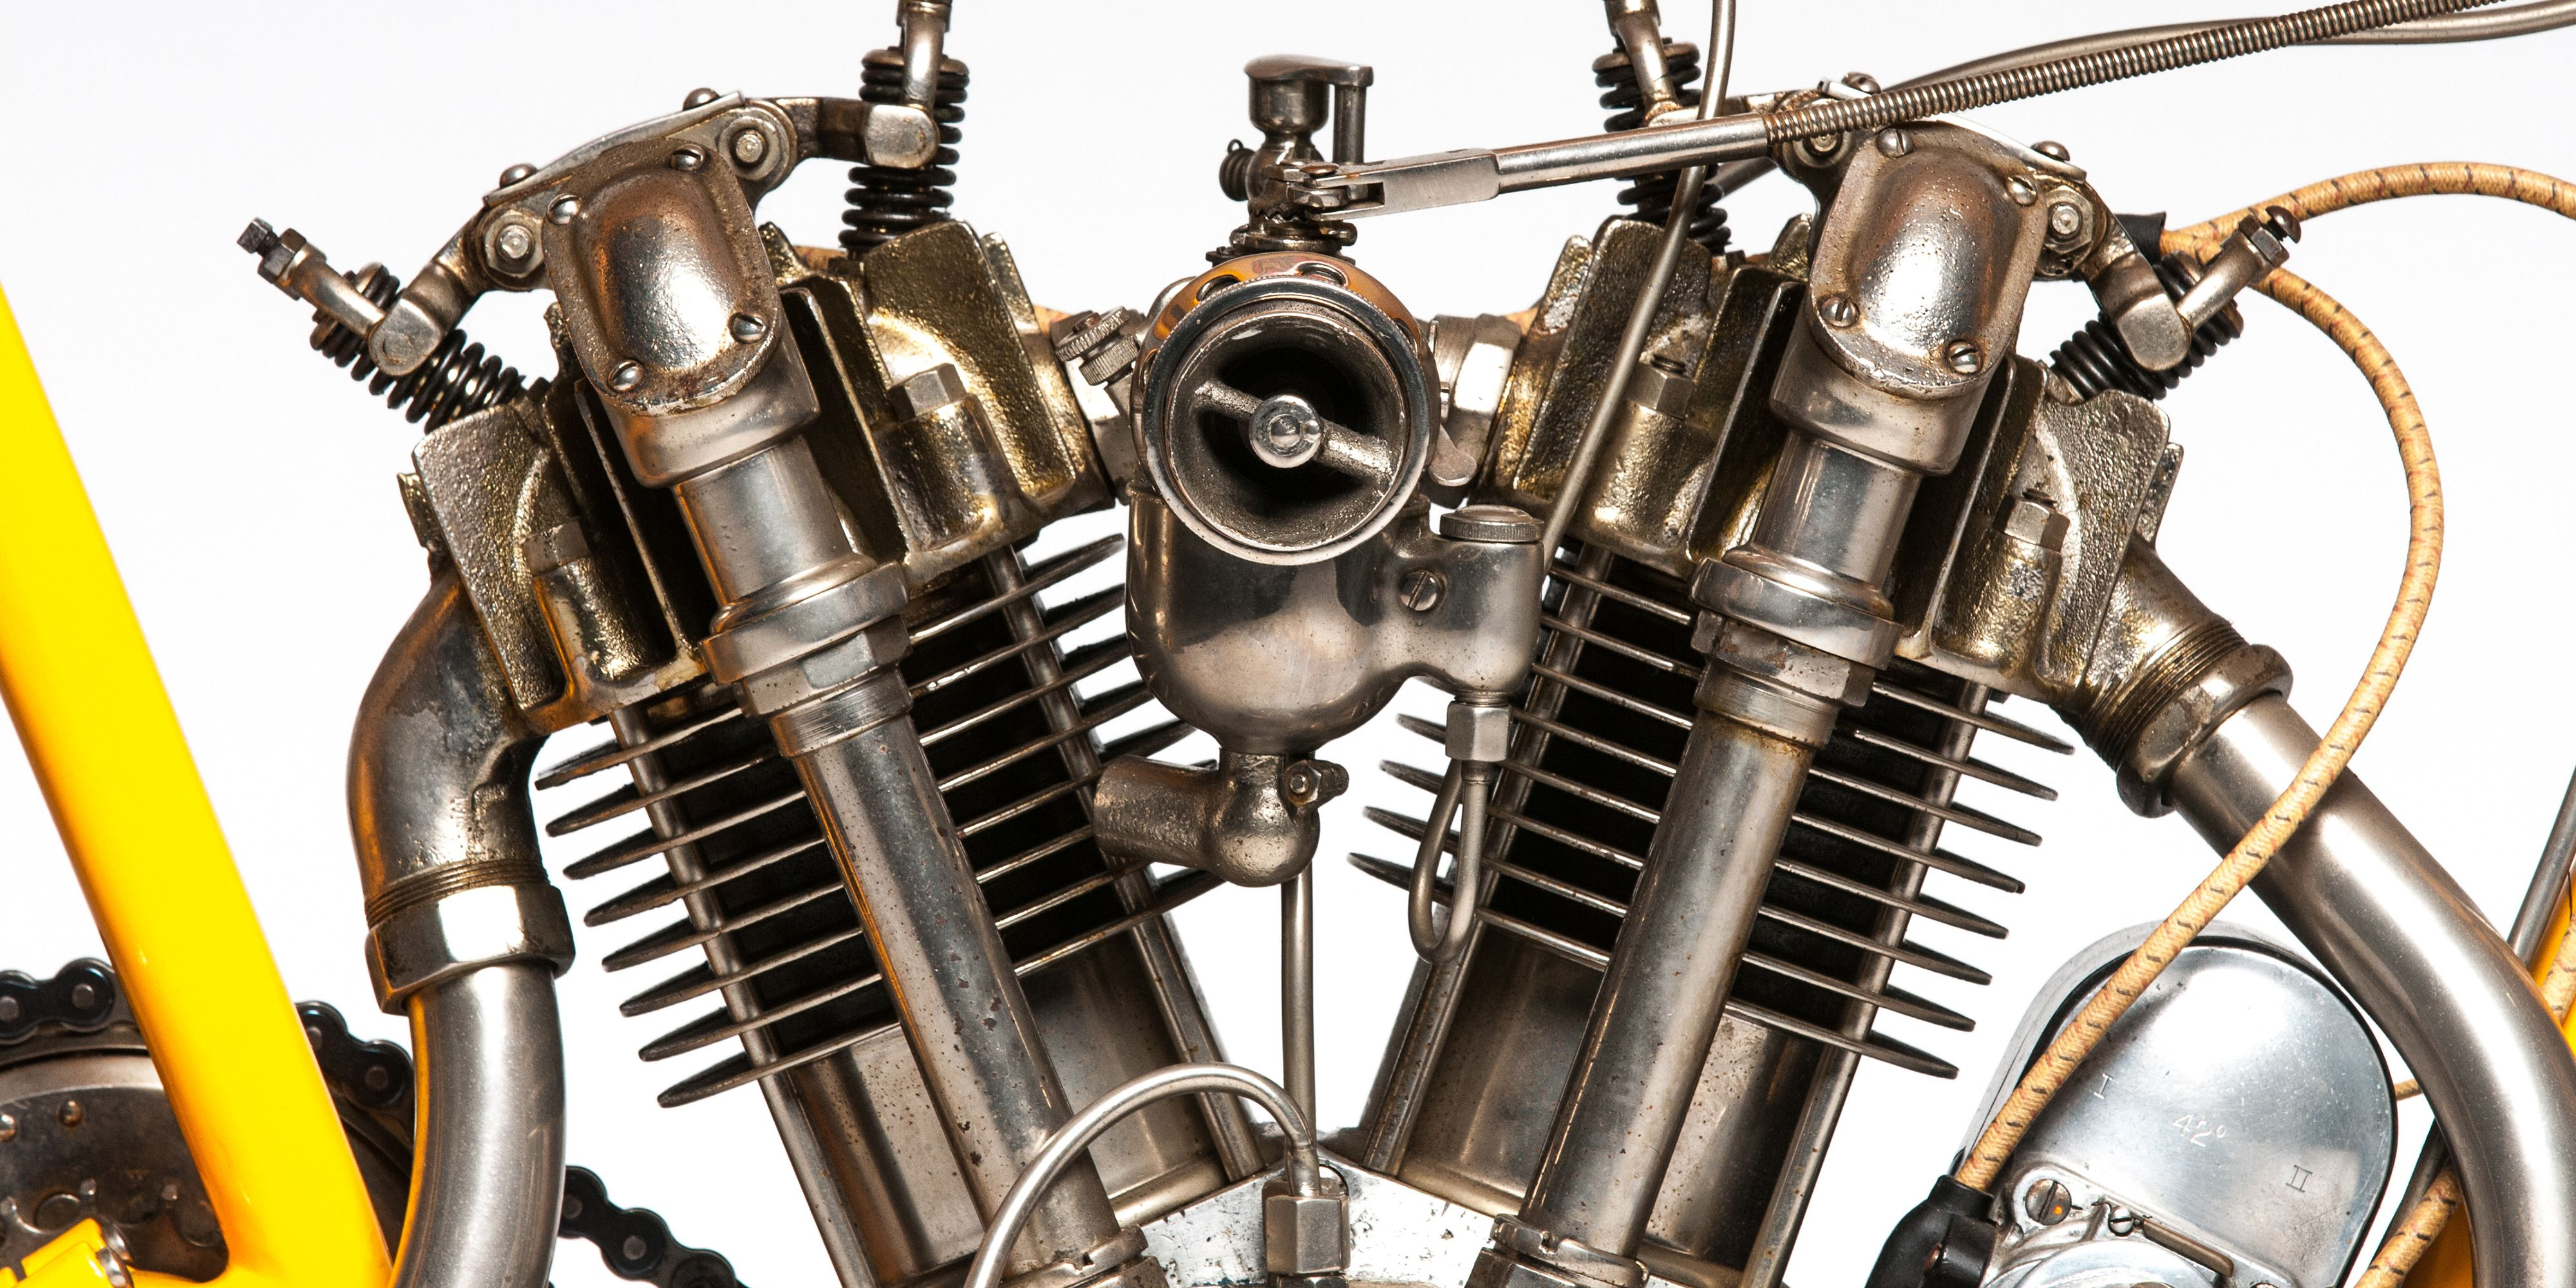 "The beautiful bevel-drive, overhead cam engine was the centerpiece of the Cyclone, and a glimpse at motorcycling's high-performance future. It's listed on <a href=""https://www.mecum.com/lot-detail/EJ0315-211653/0/1915-Cyclone-Board-Track-Racer-Ex-Steve-McQueen/"">Mecum, here.</a>"